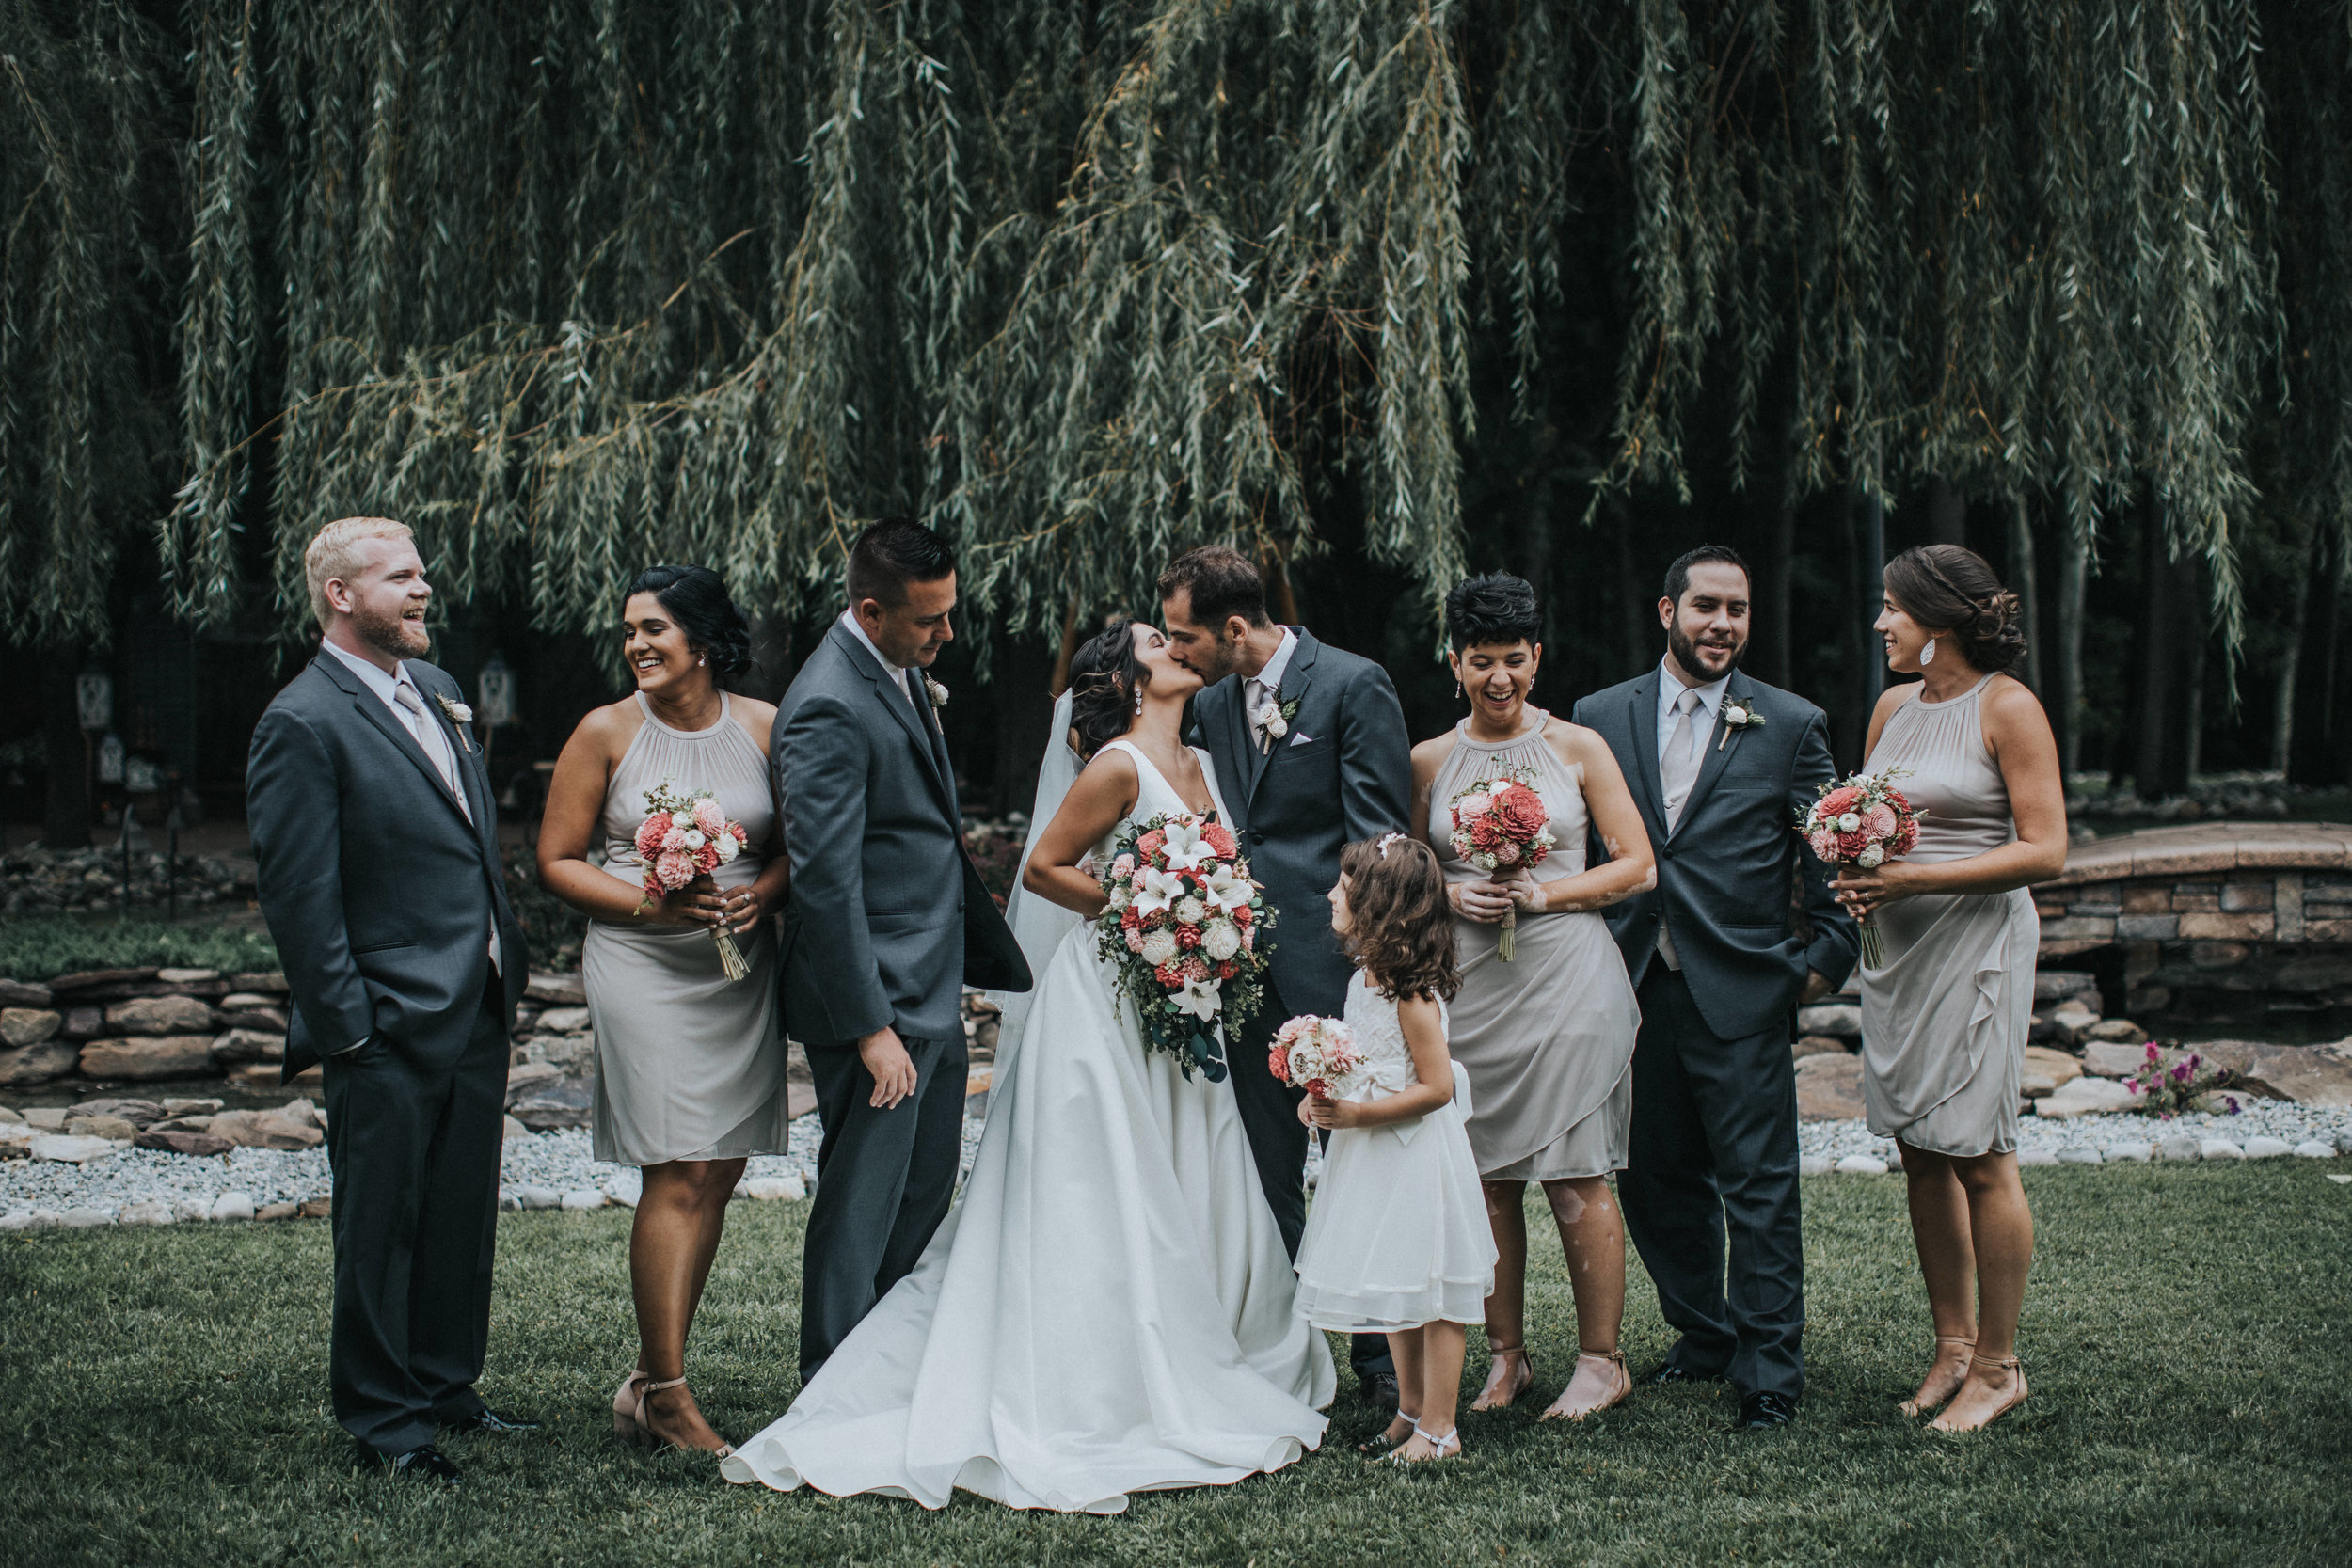 New-Jersey-Wedding-Photographer-Jenna-Lynn-Photography-Wedding-Brigalias-Ashley&Sal-BridalParty-10.jpg